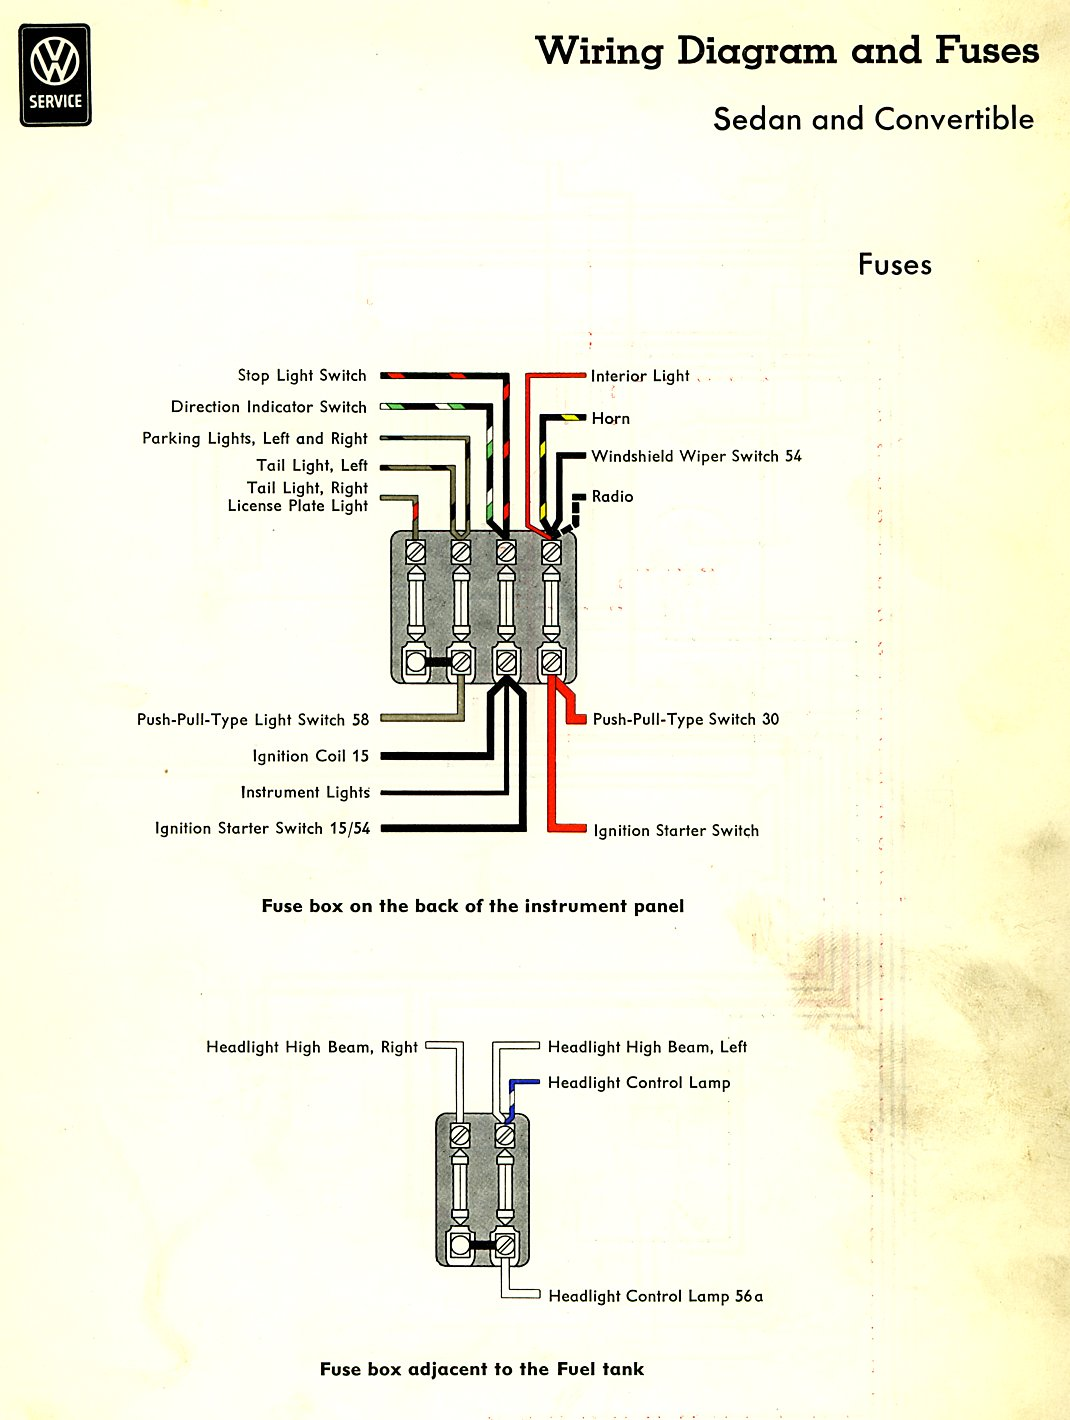 1968 VW Beetle Wiring Diagram additionally 1973 VW Super Beetle Wiring Diagram furthermore VW Beetle Wiring Diagram further 1971 VW Beetle Wiring Diagram also VW Beetle Fuse Box Diagram. on 1969 vw beetle wiring diagram lzk gallery